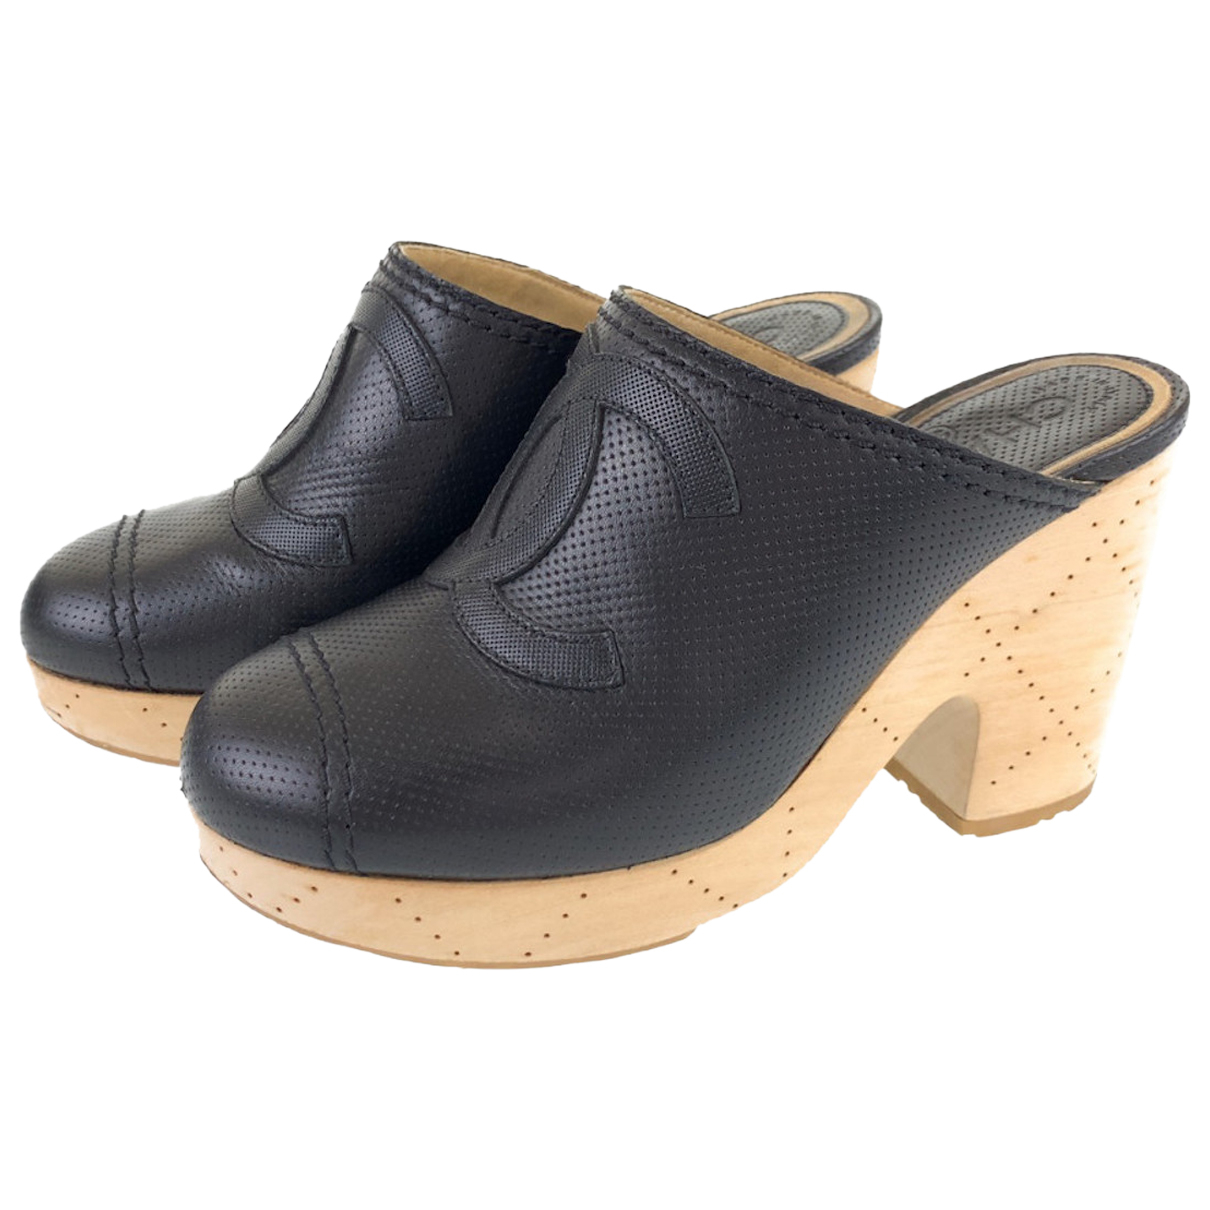 Chanel N Leather Sandals for Women 38.5 EU